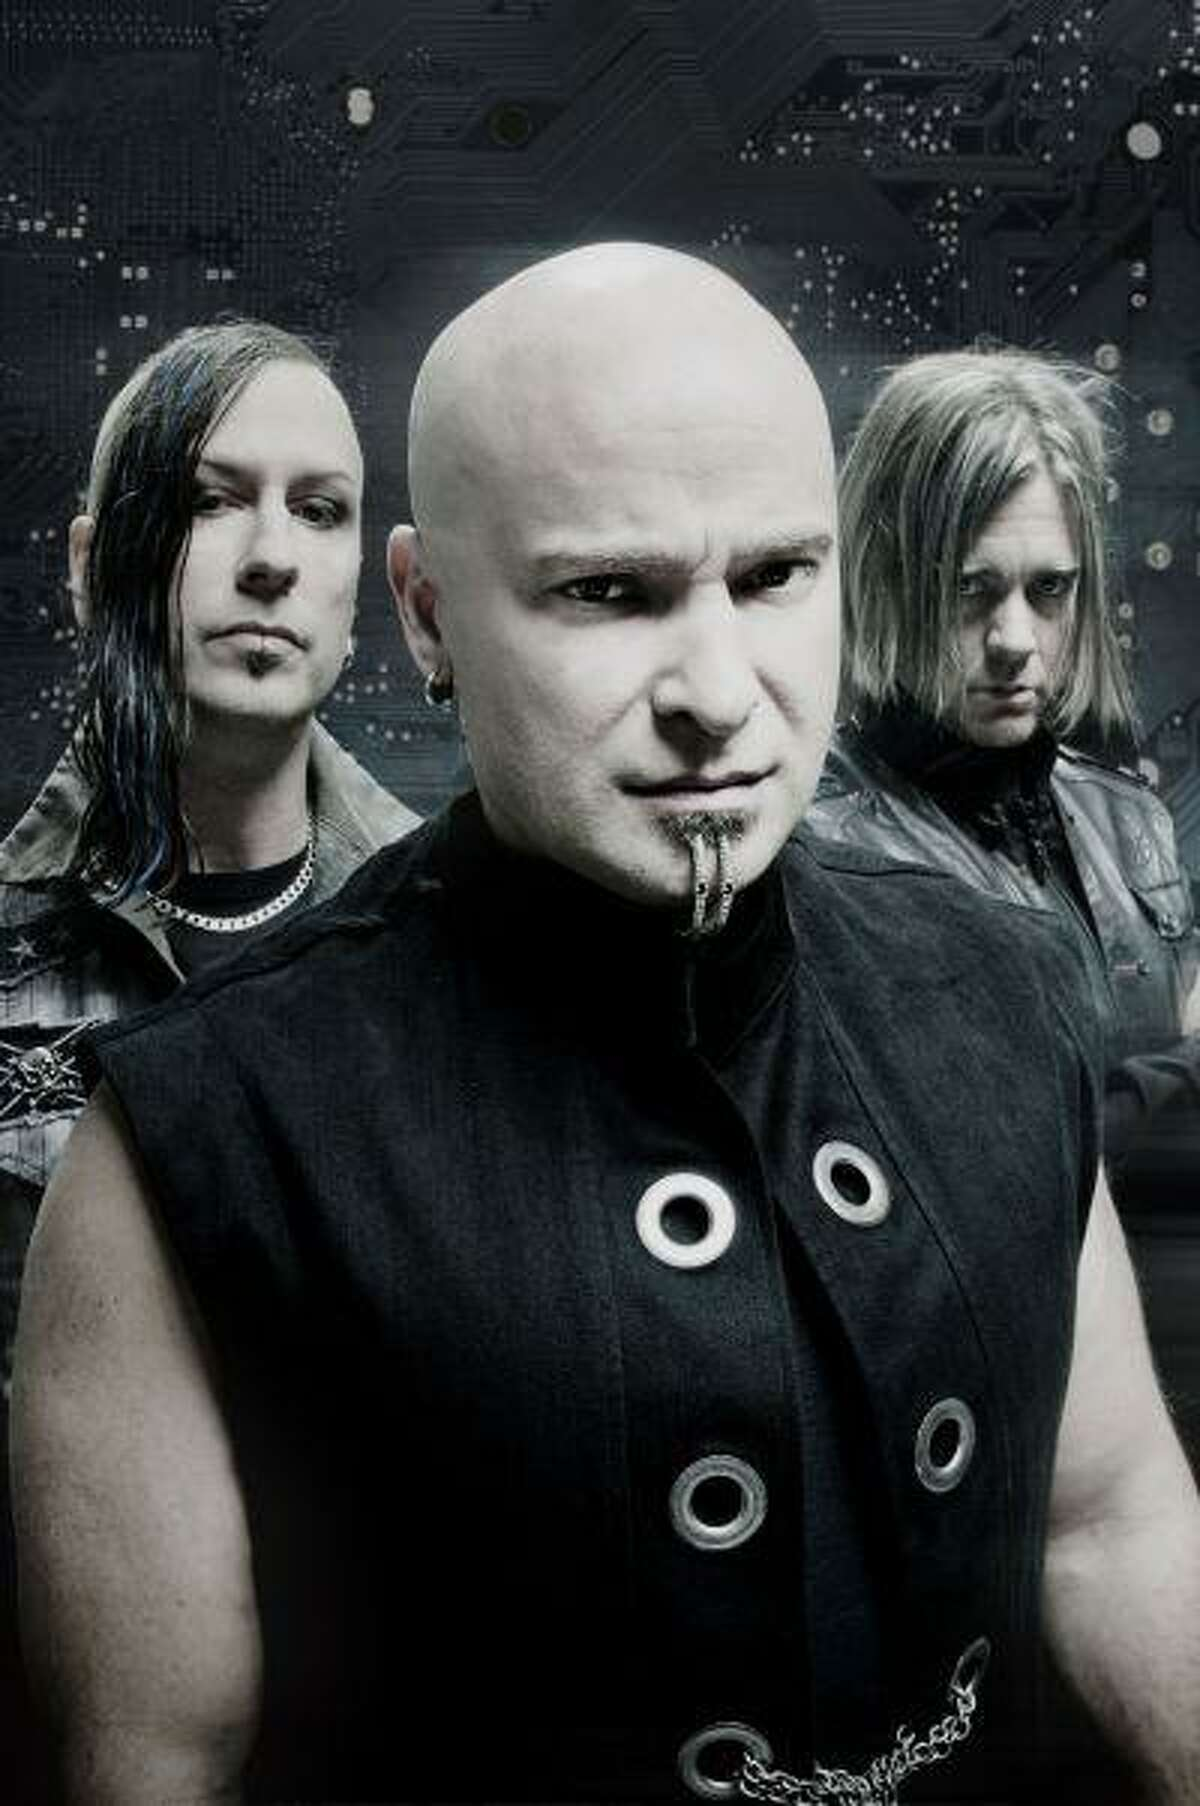 David Draiman brings together friends from other bands for Device tour. (Oakland Press)